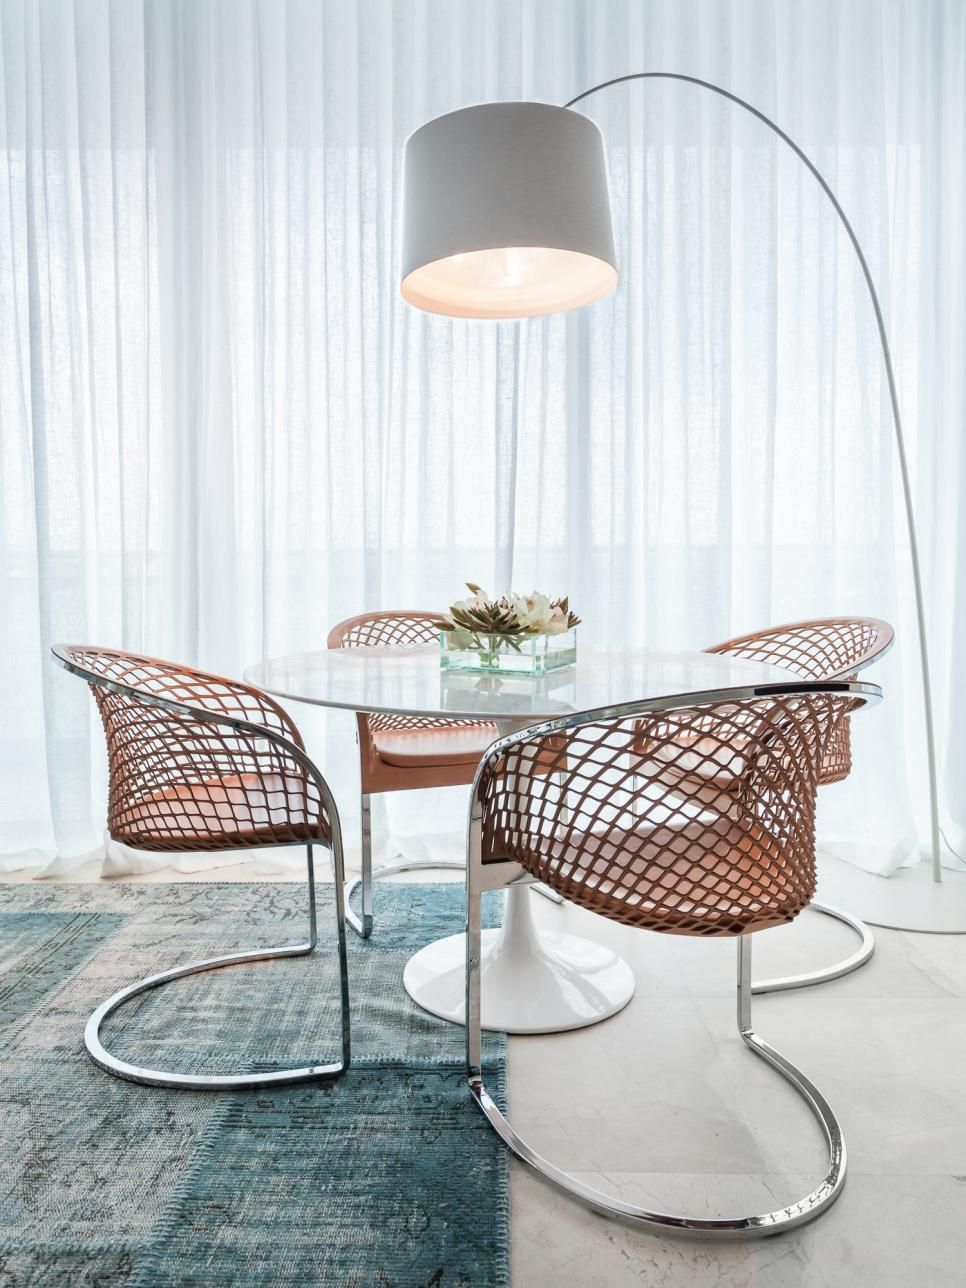 Pin By Anna Dunford On Kitchy Dining Room Floor Lamp Arc Floor